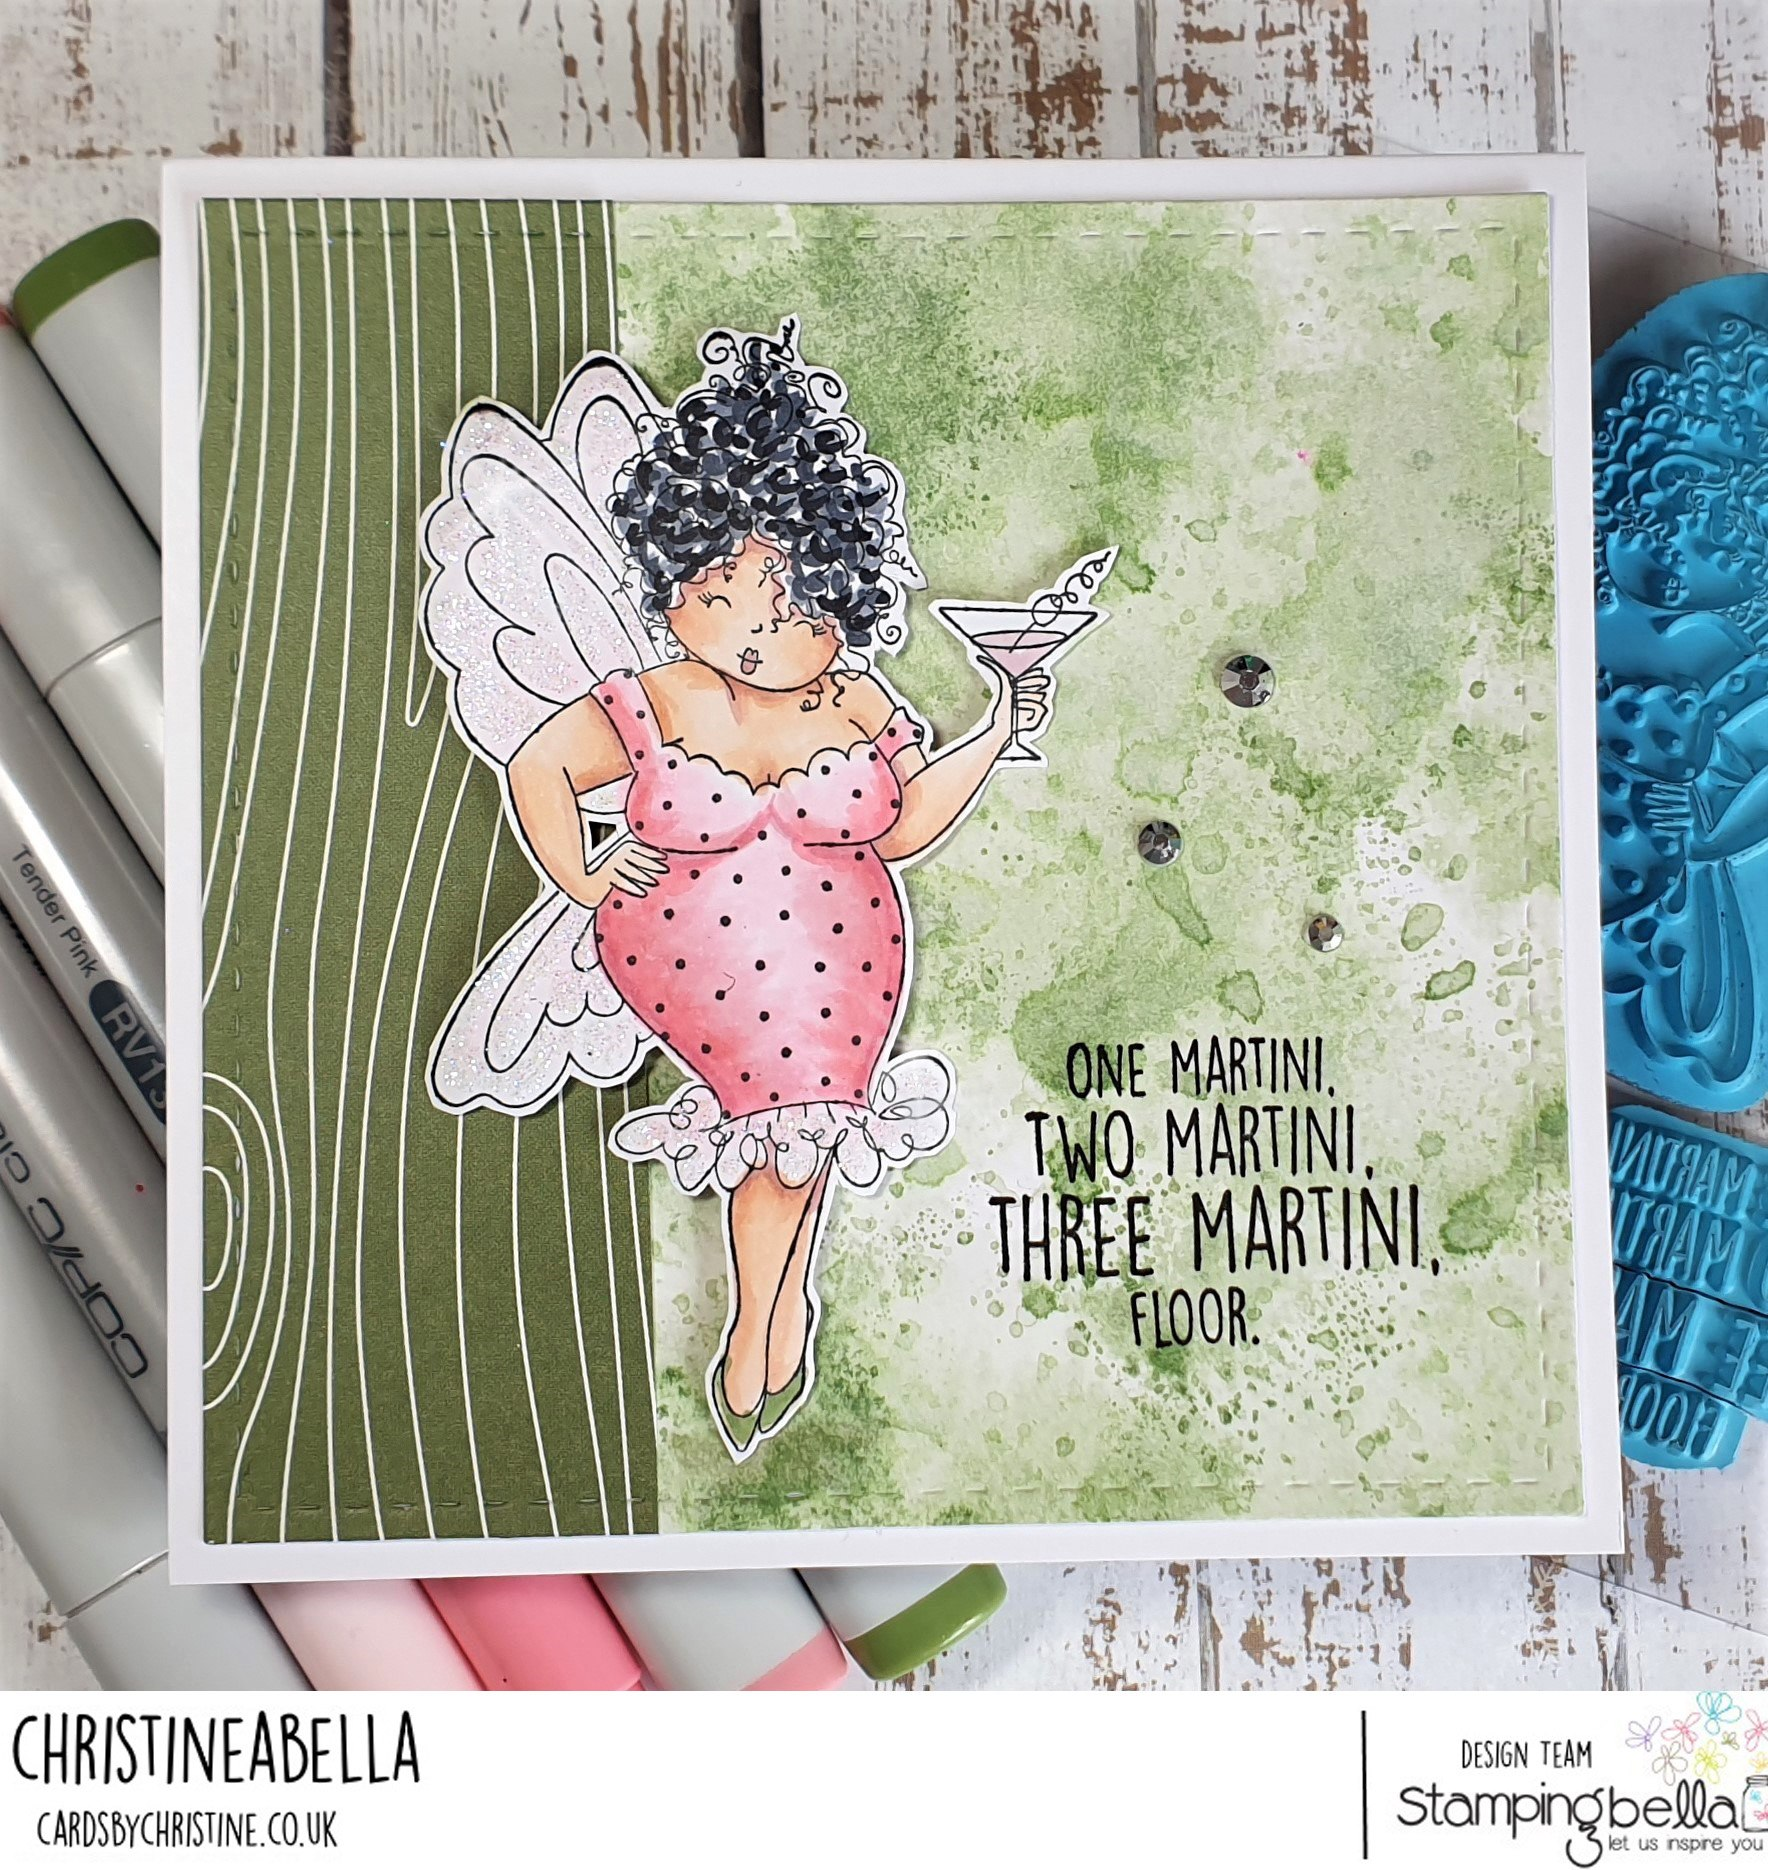 www.stampingbella.com: rubber stamp used: EDNA NEEDS A MARTINI card by CHRISTINE LEVISON